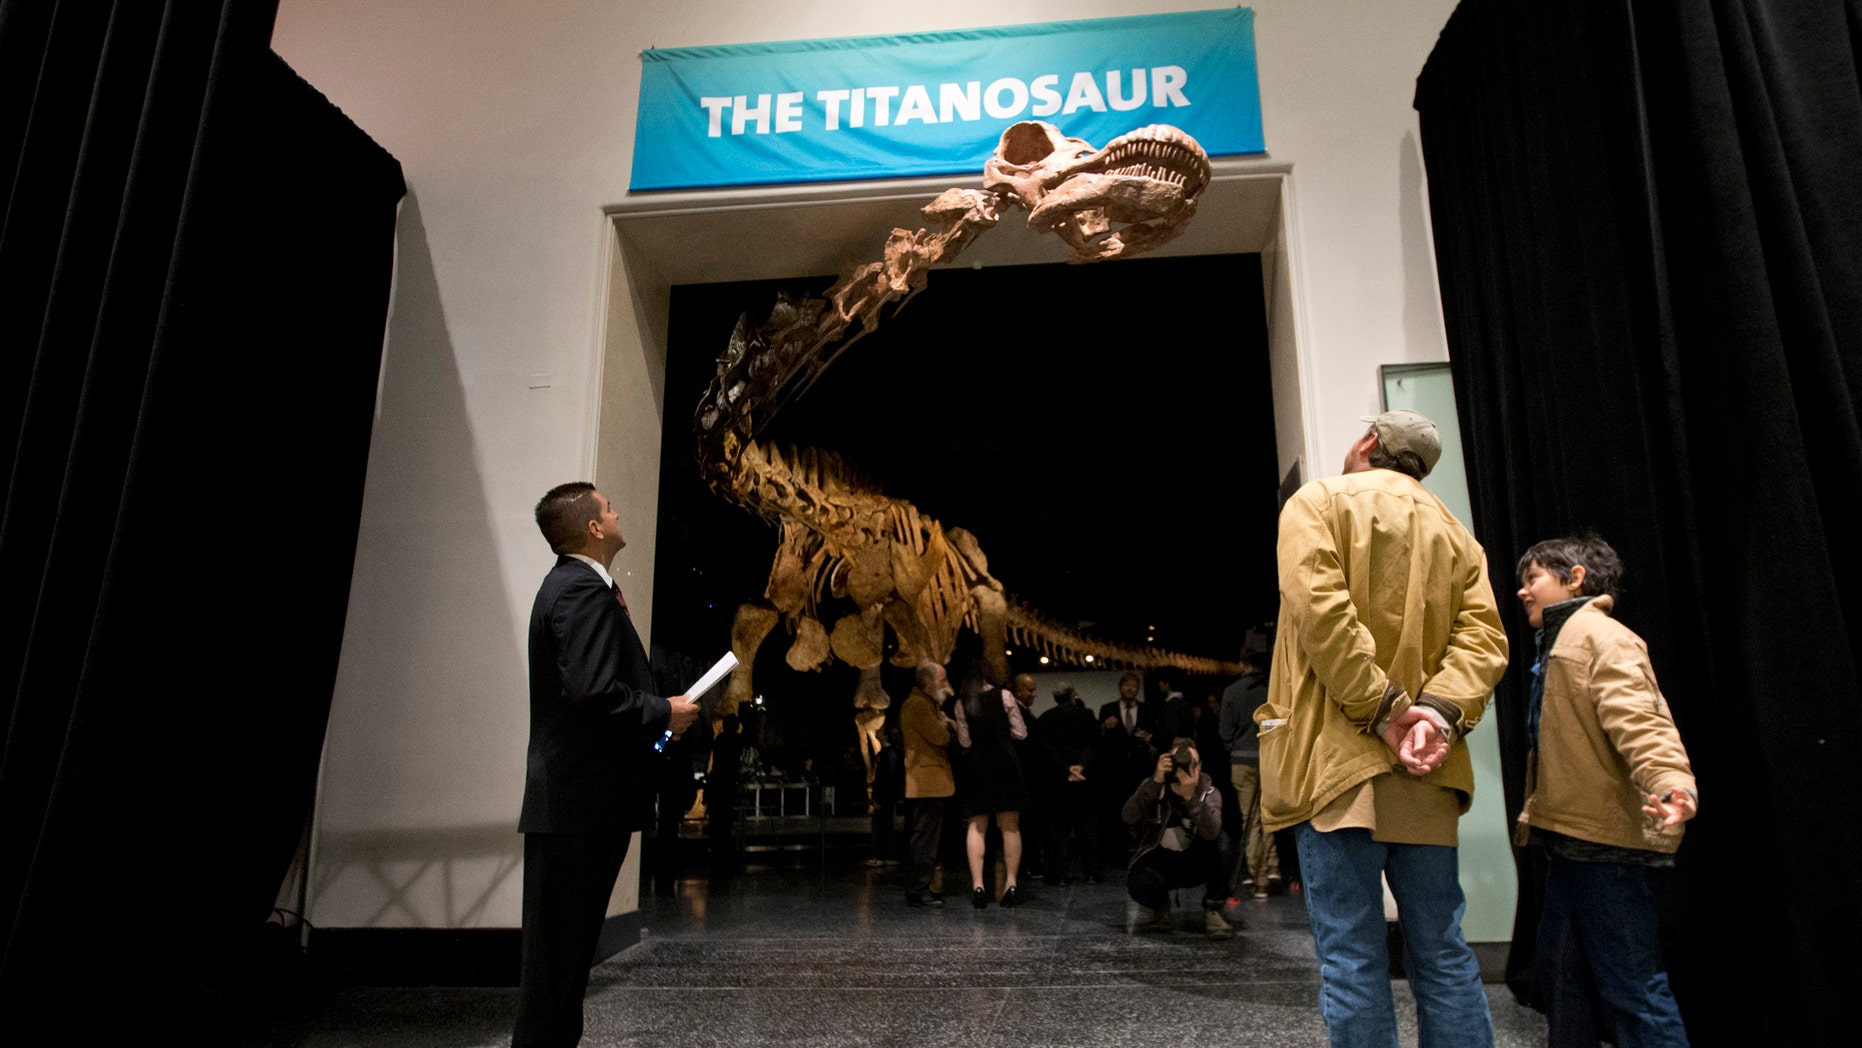 File-This Jan. 14, 2016, file photo shows visitors to the American Museum of Natural History examining a replica of a 122-foot-long dinosaur on display. A study proclaims a newly named species the heavyweight champion of all dinosaurs. (AP Photo/Mary Altaffer, File)